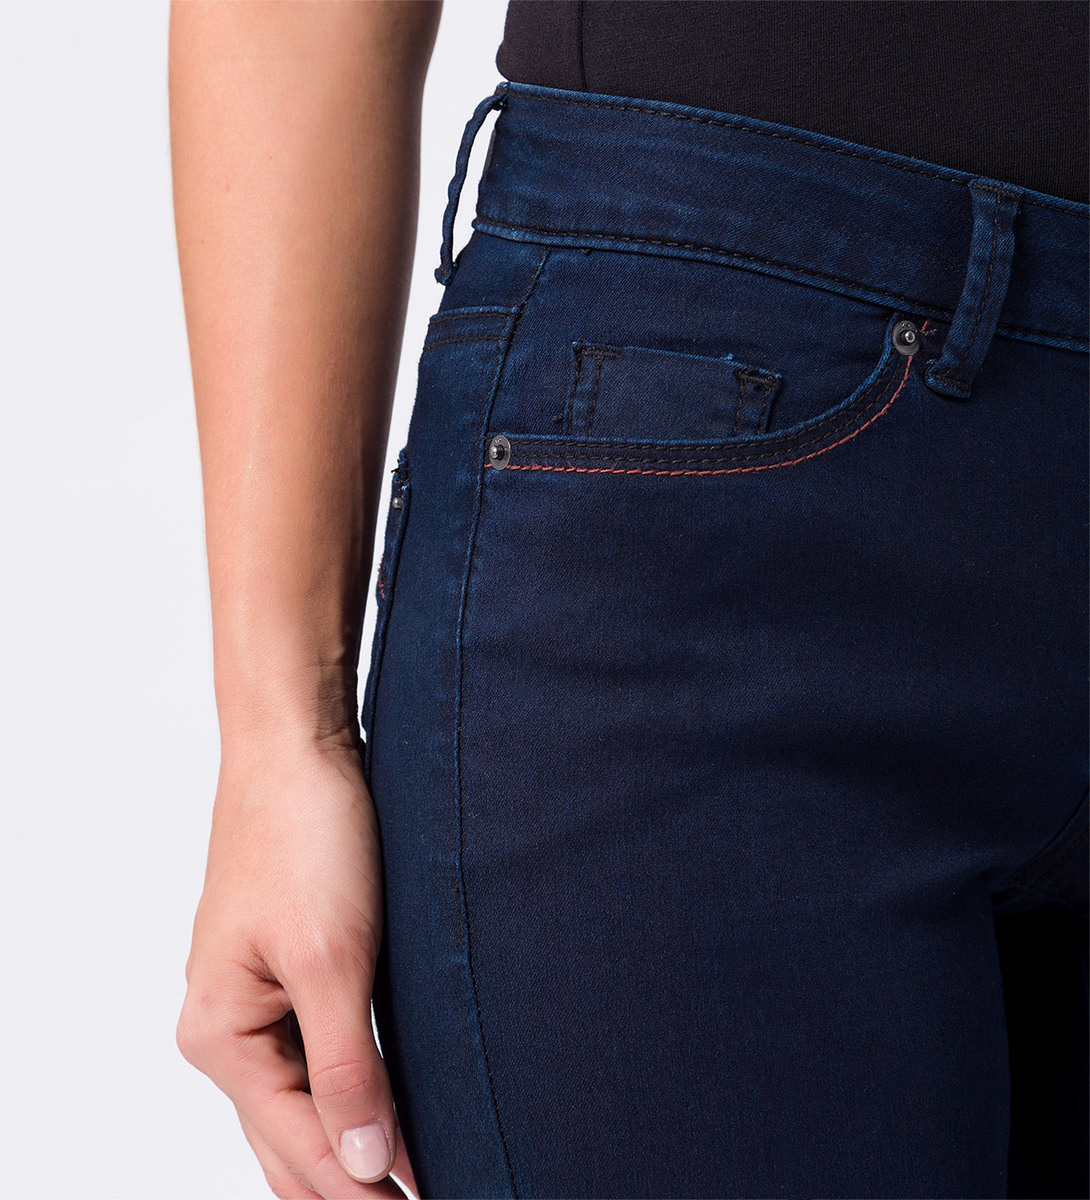 Jeans slim fit 30 inch in dark blue washed